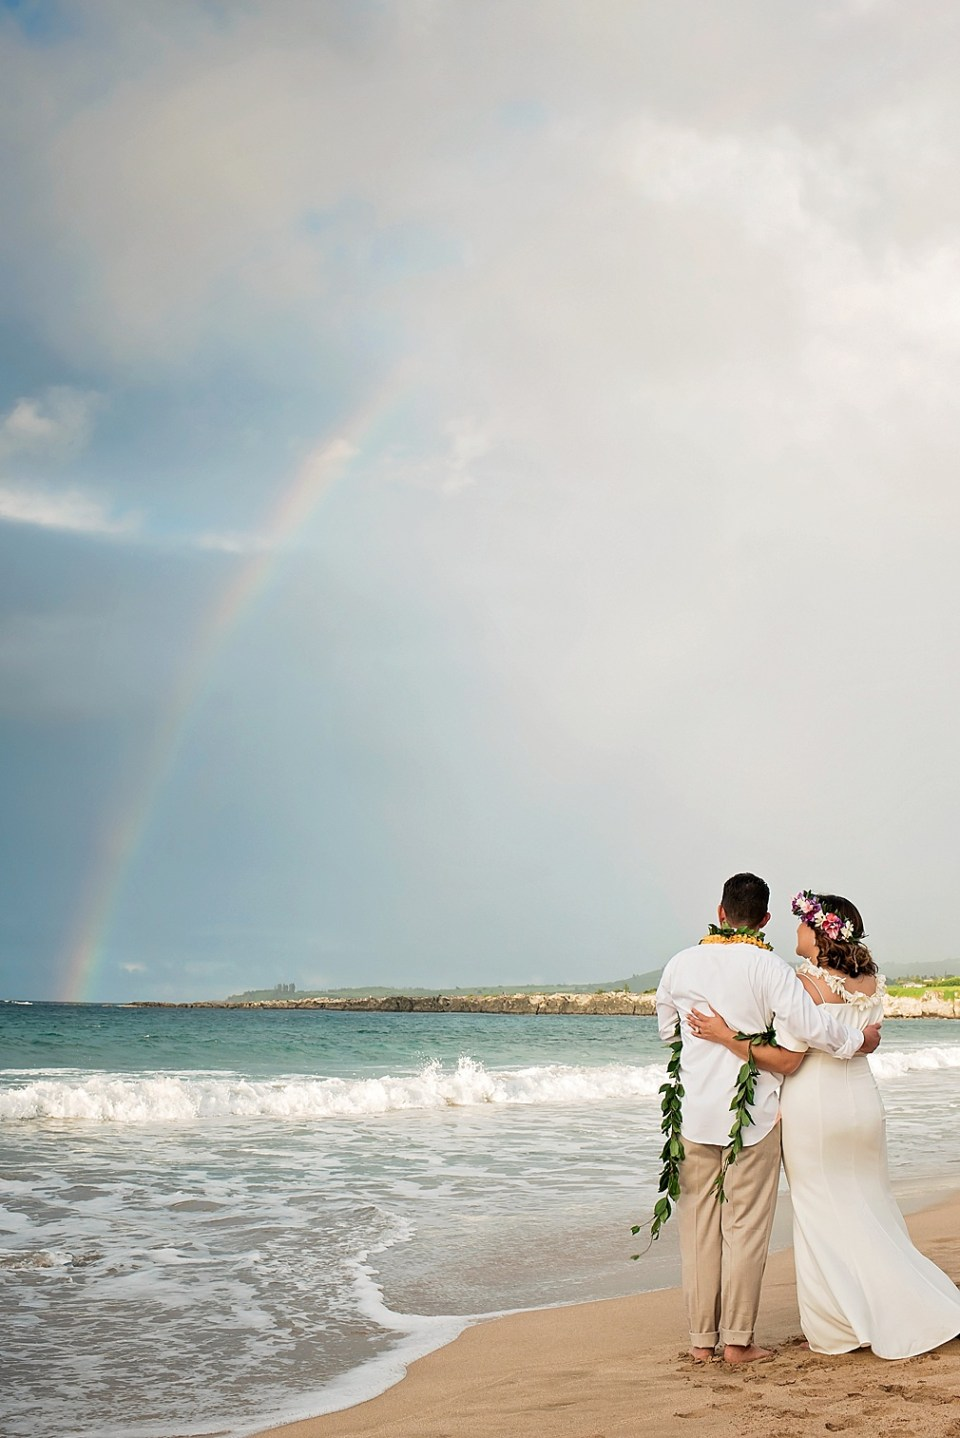 Maui wedding of Art and Suzie on pristine Ironwood Beach featuring a magnificent rainbow photographed by Mariah Milan photographers